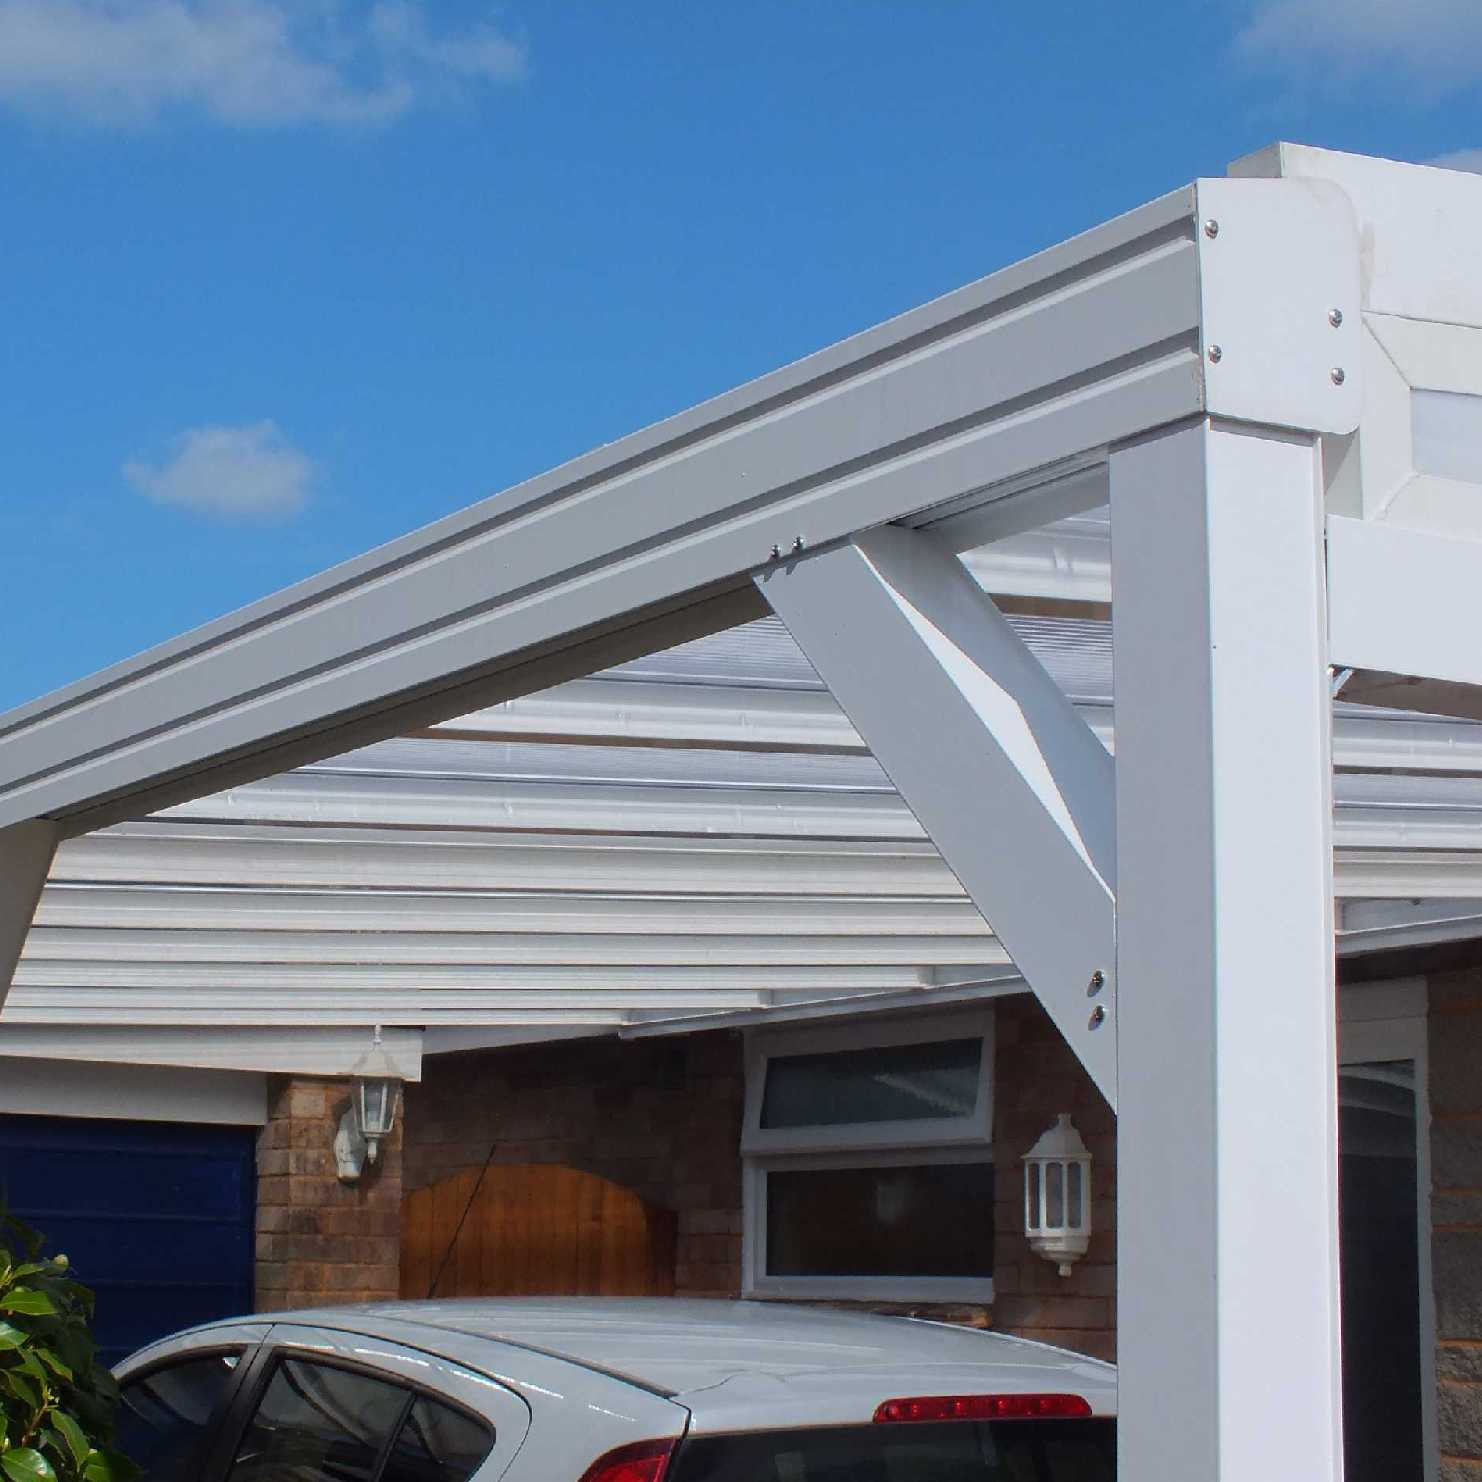 Great deals on Omega Smart White Lean-To Canopy with 16mm Polycarbonate Glazing - 7.0m (W) x 4.0m (P), (4) Supporting Posts